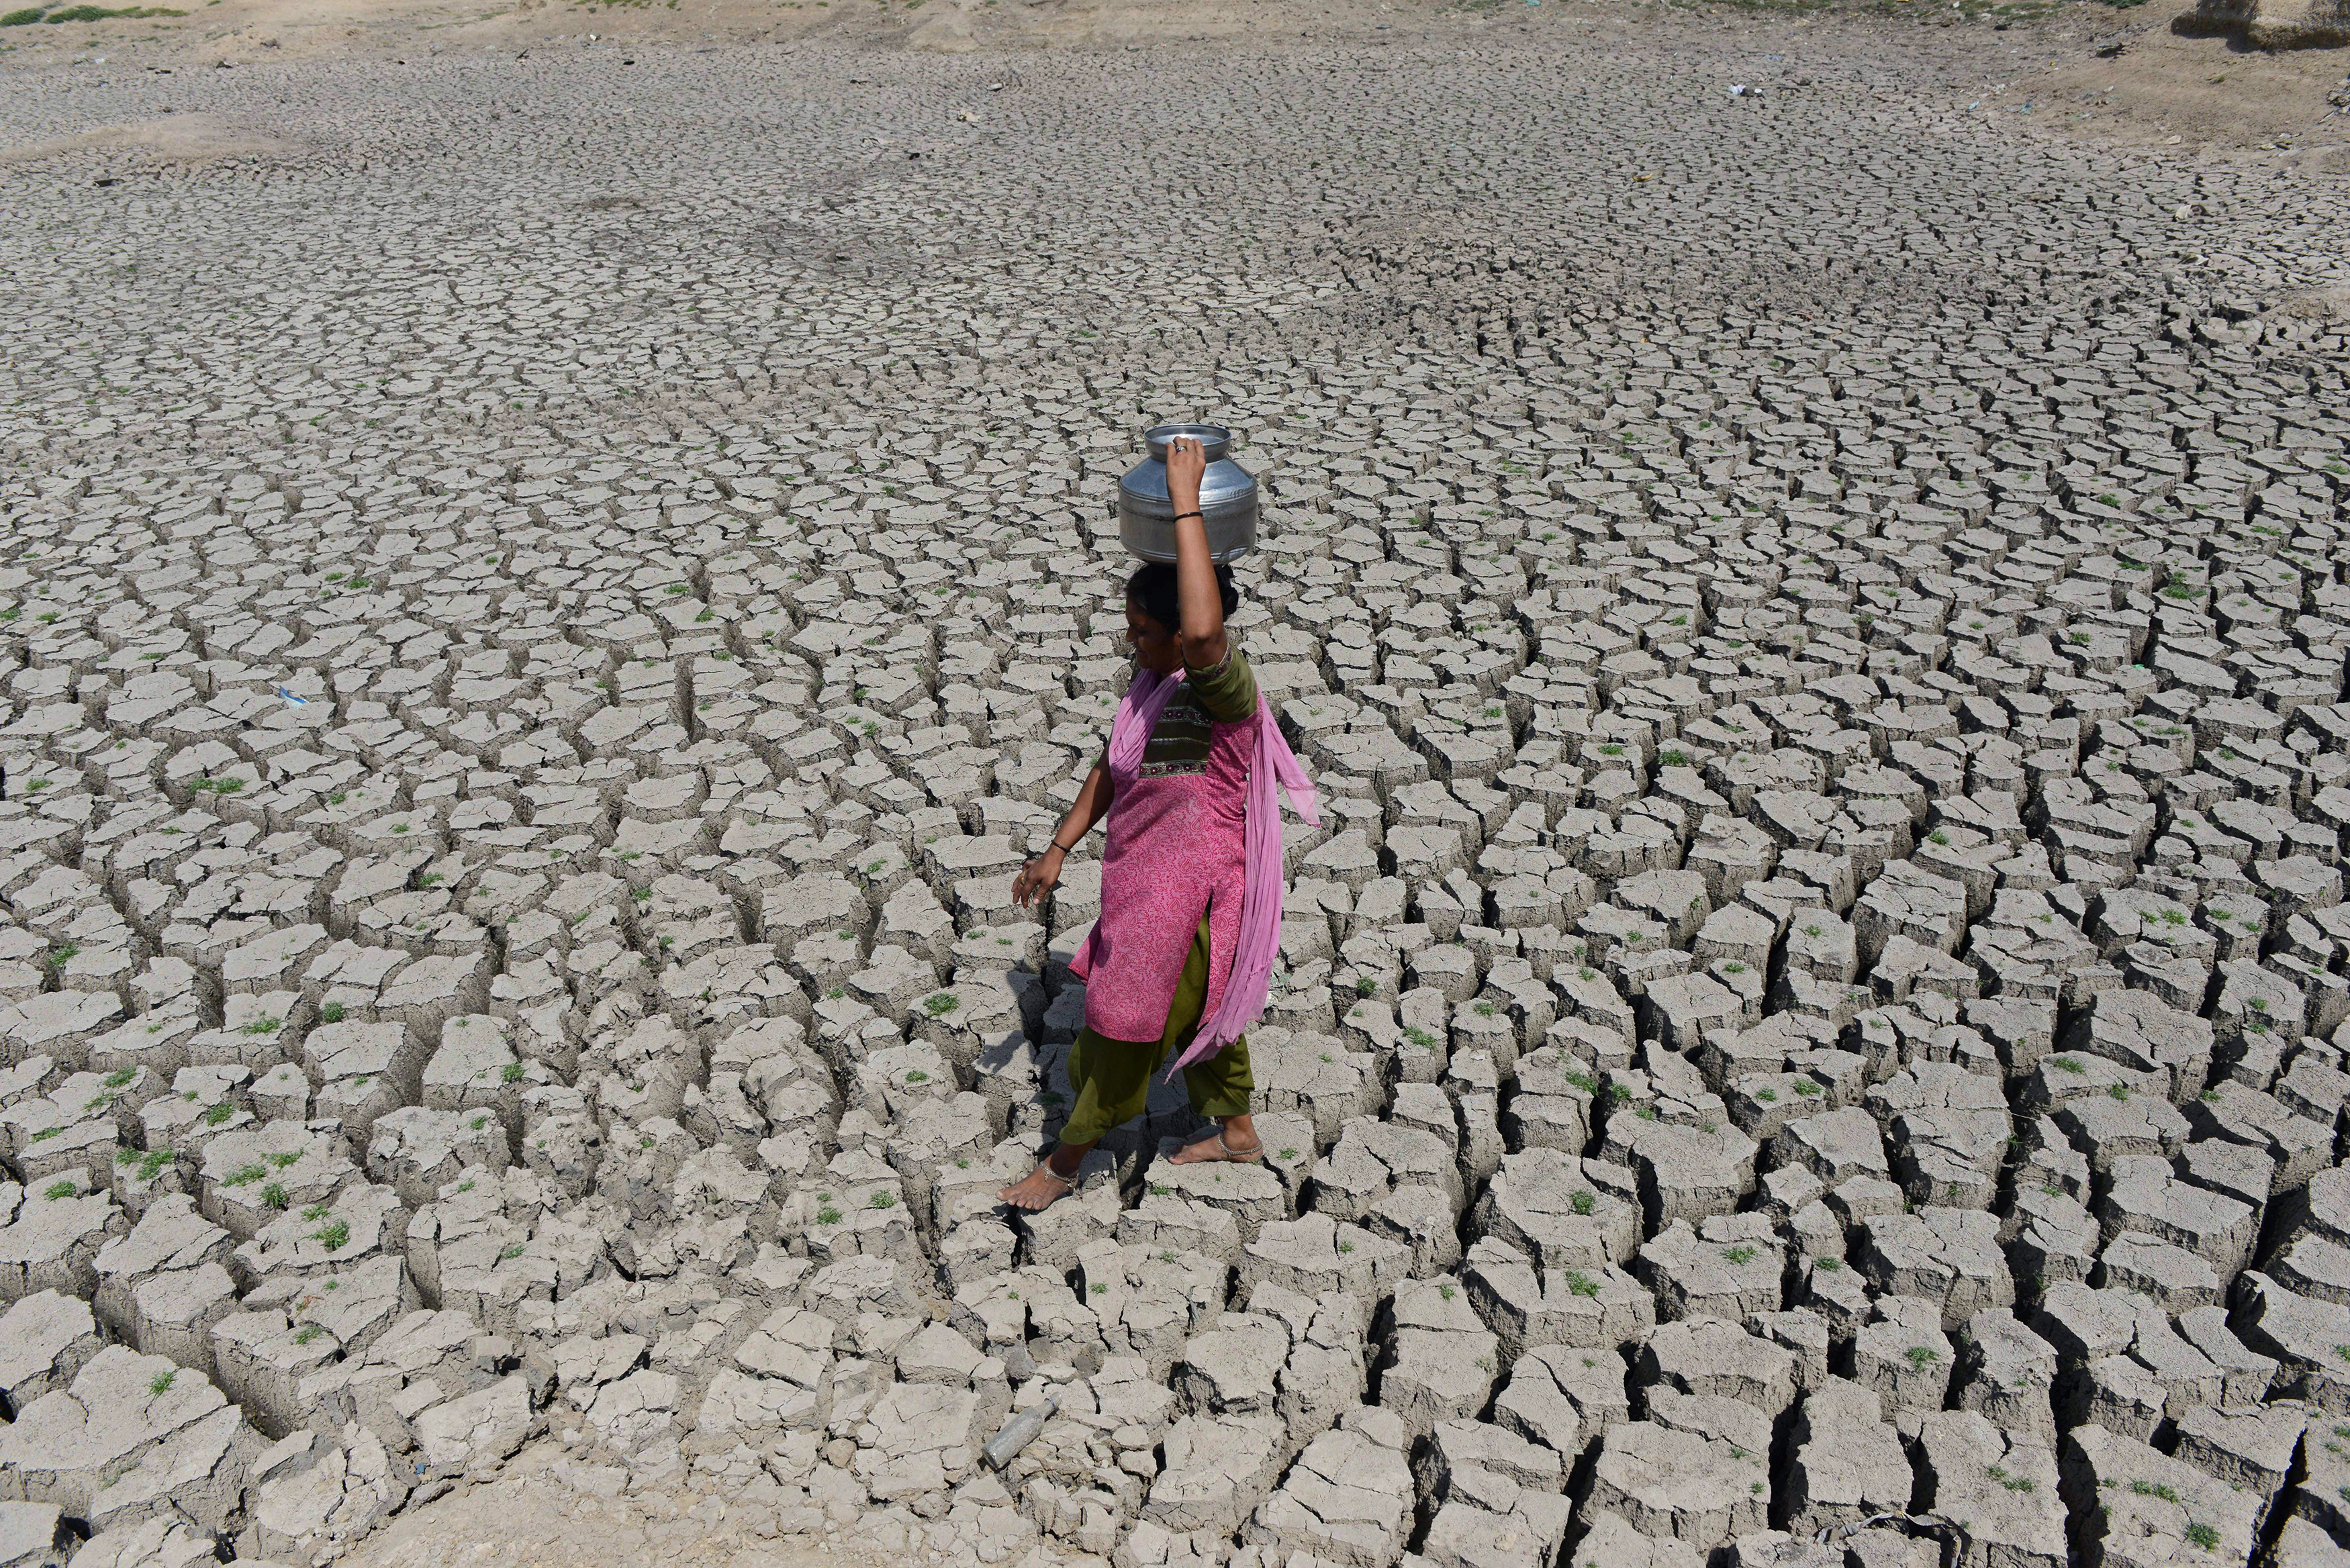 An Indian woman walks on the parched bed of Chandola Lake with a metal pot on her head to fetch water in Ahmedabad on May 20, 2016. India is facing its worst water crisis in decades, with about 330 million people, or a quarter of the population, suffering from drought after two weak monsoons. / AFP PHOTO / SAM PANTHAKY